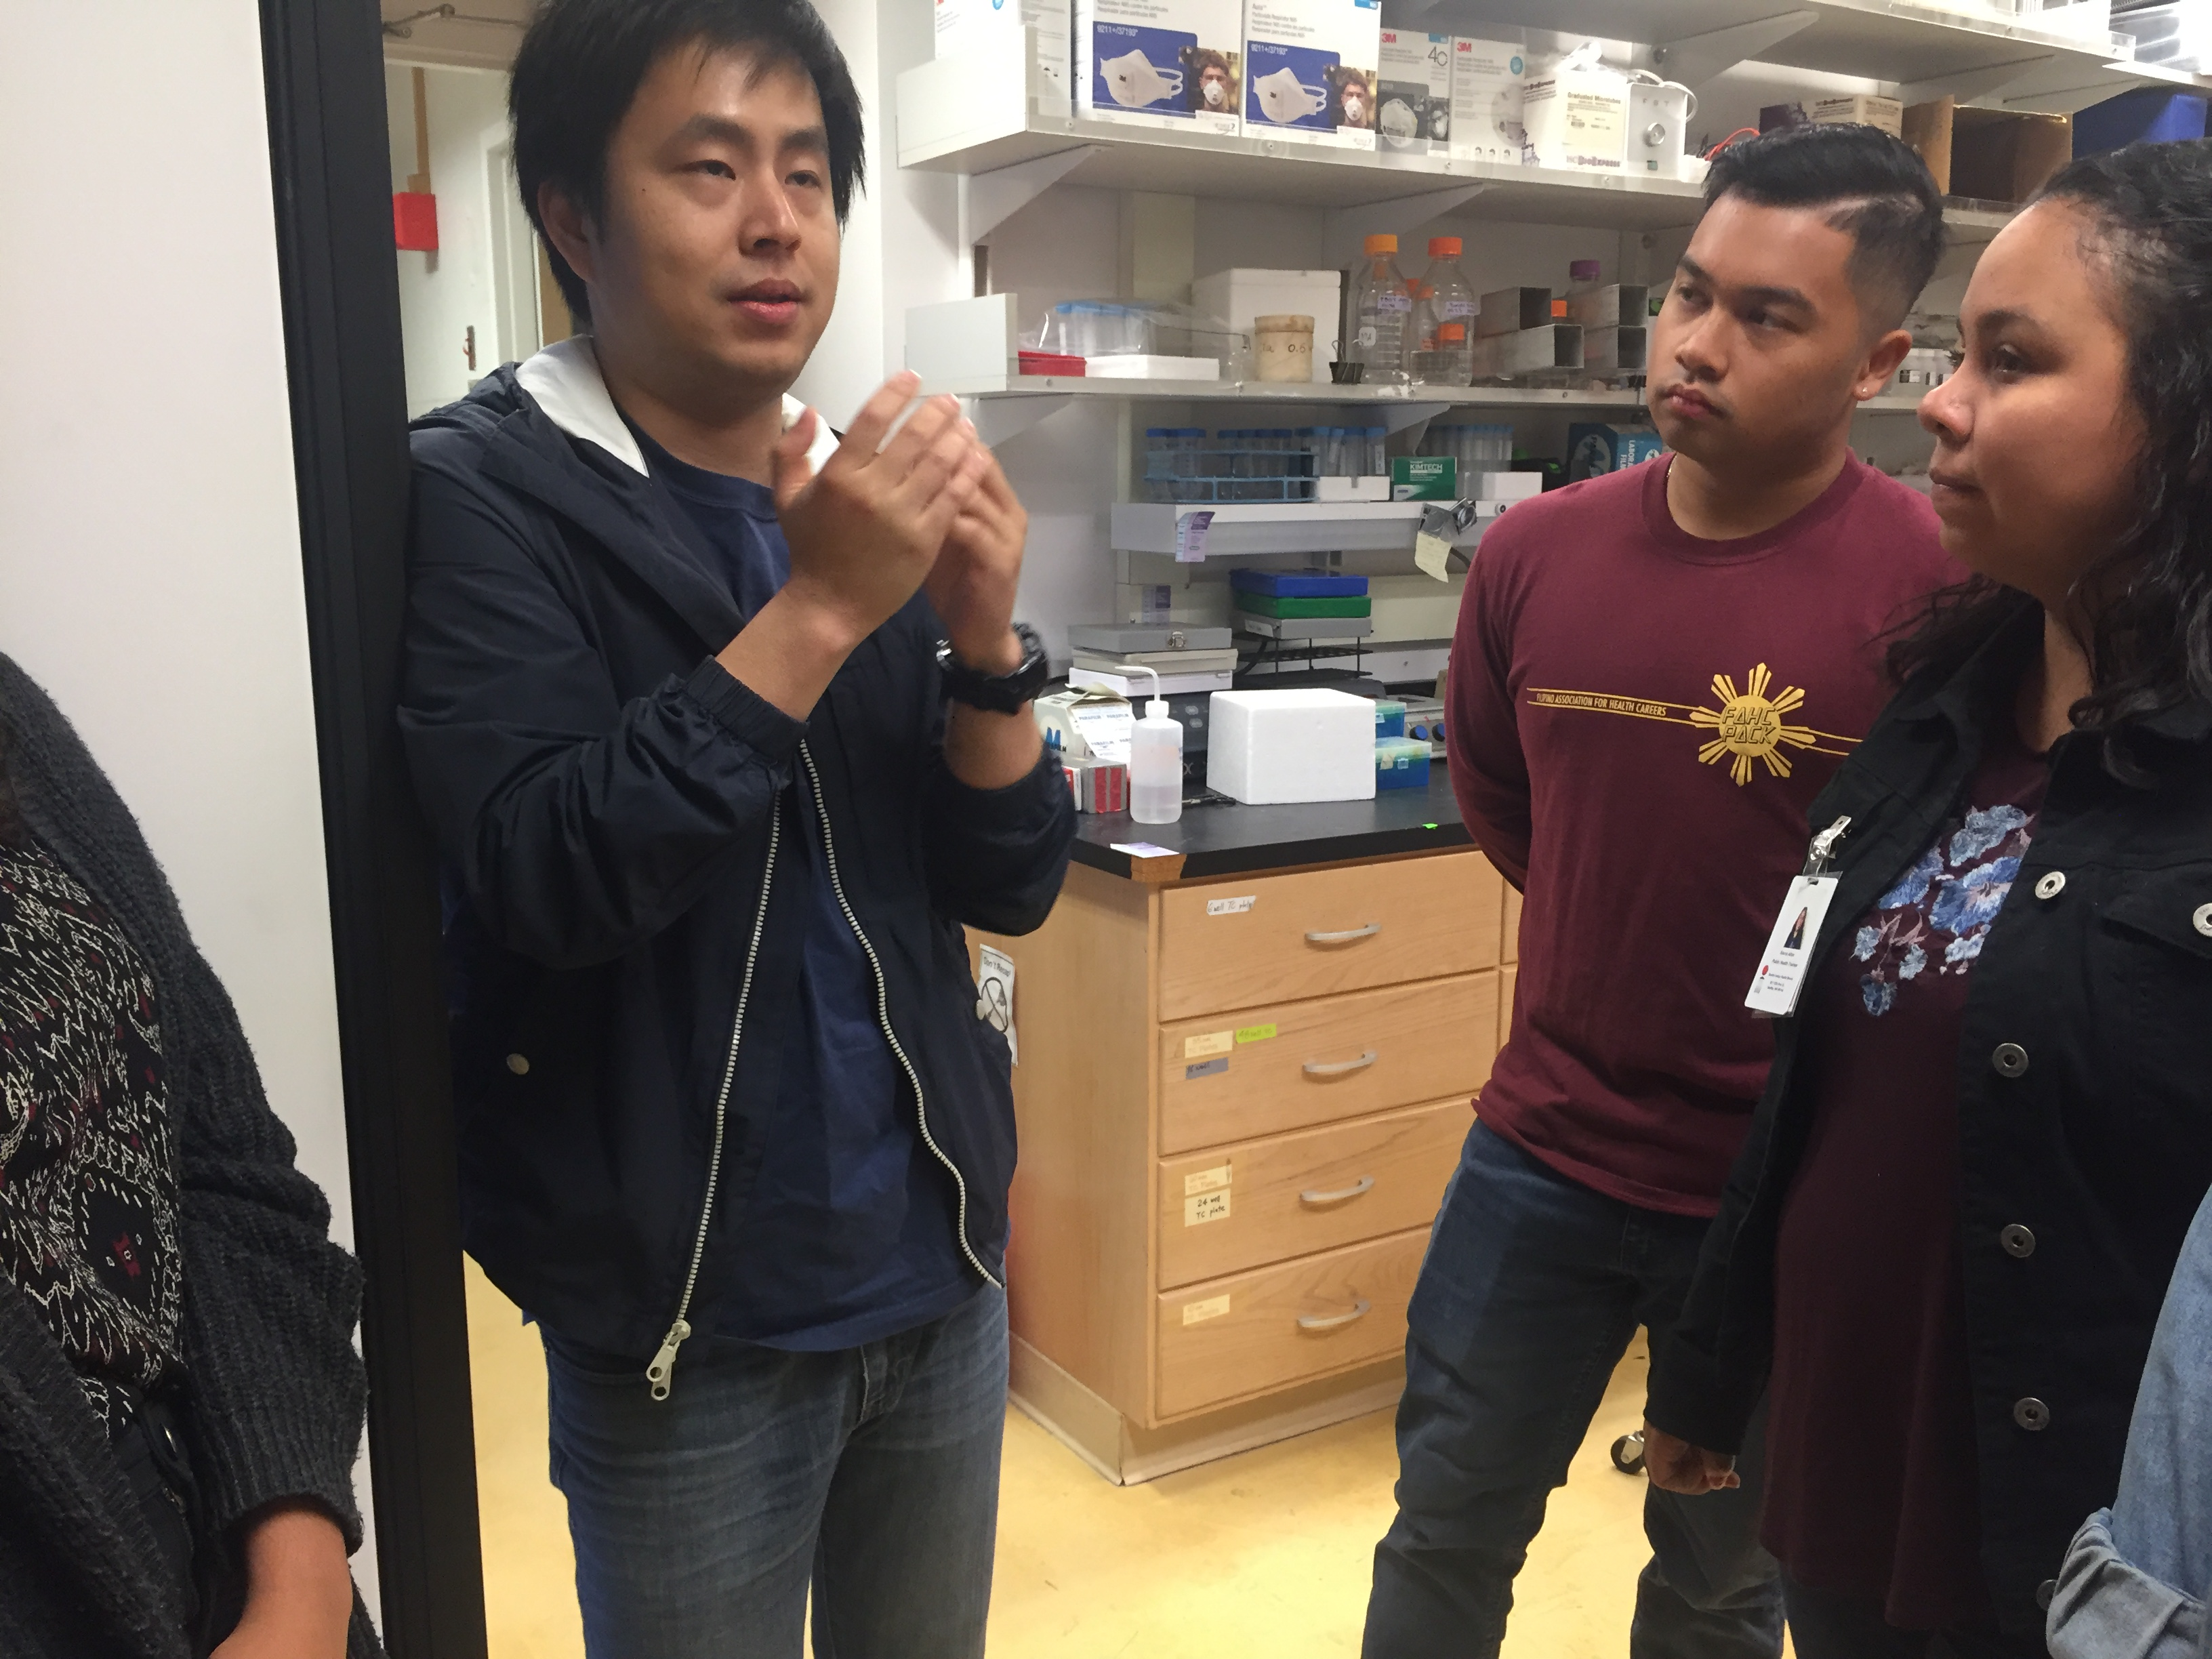 Graduate student, Hao Wang, discusses his research with visiting students in the Xia lab.